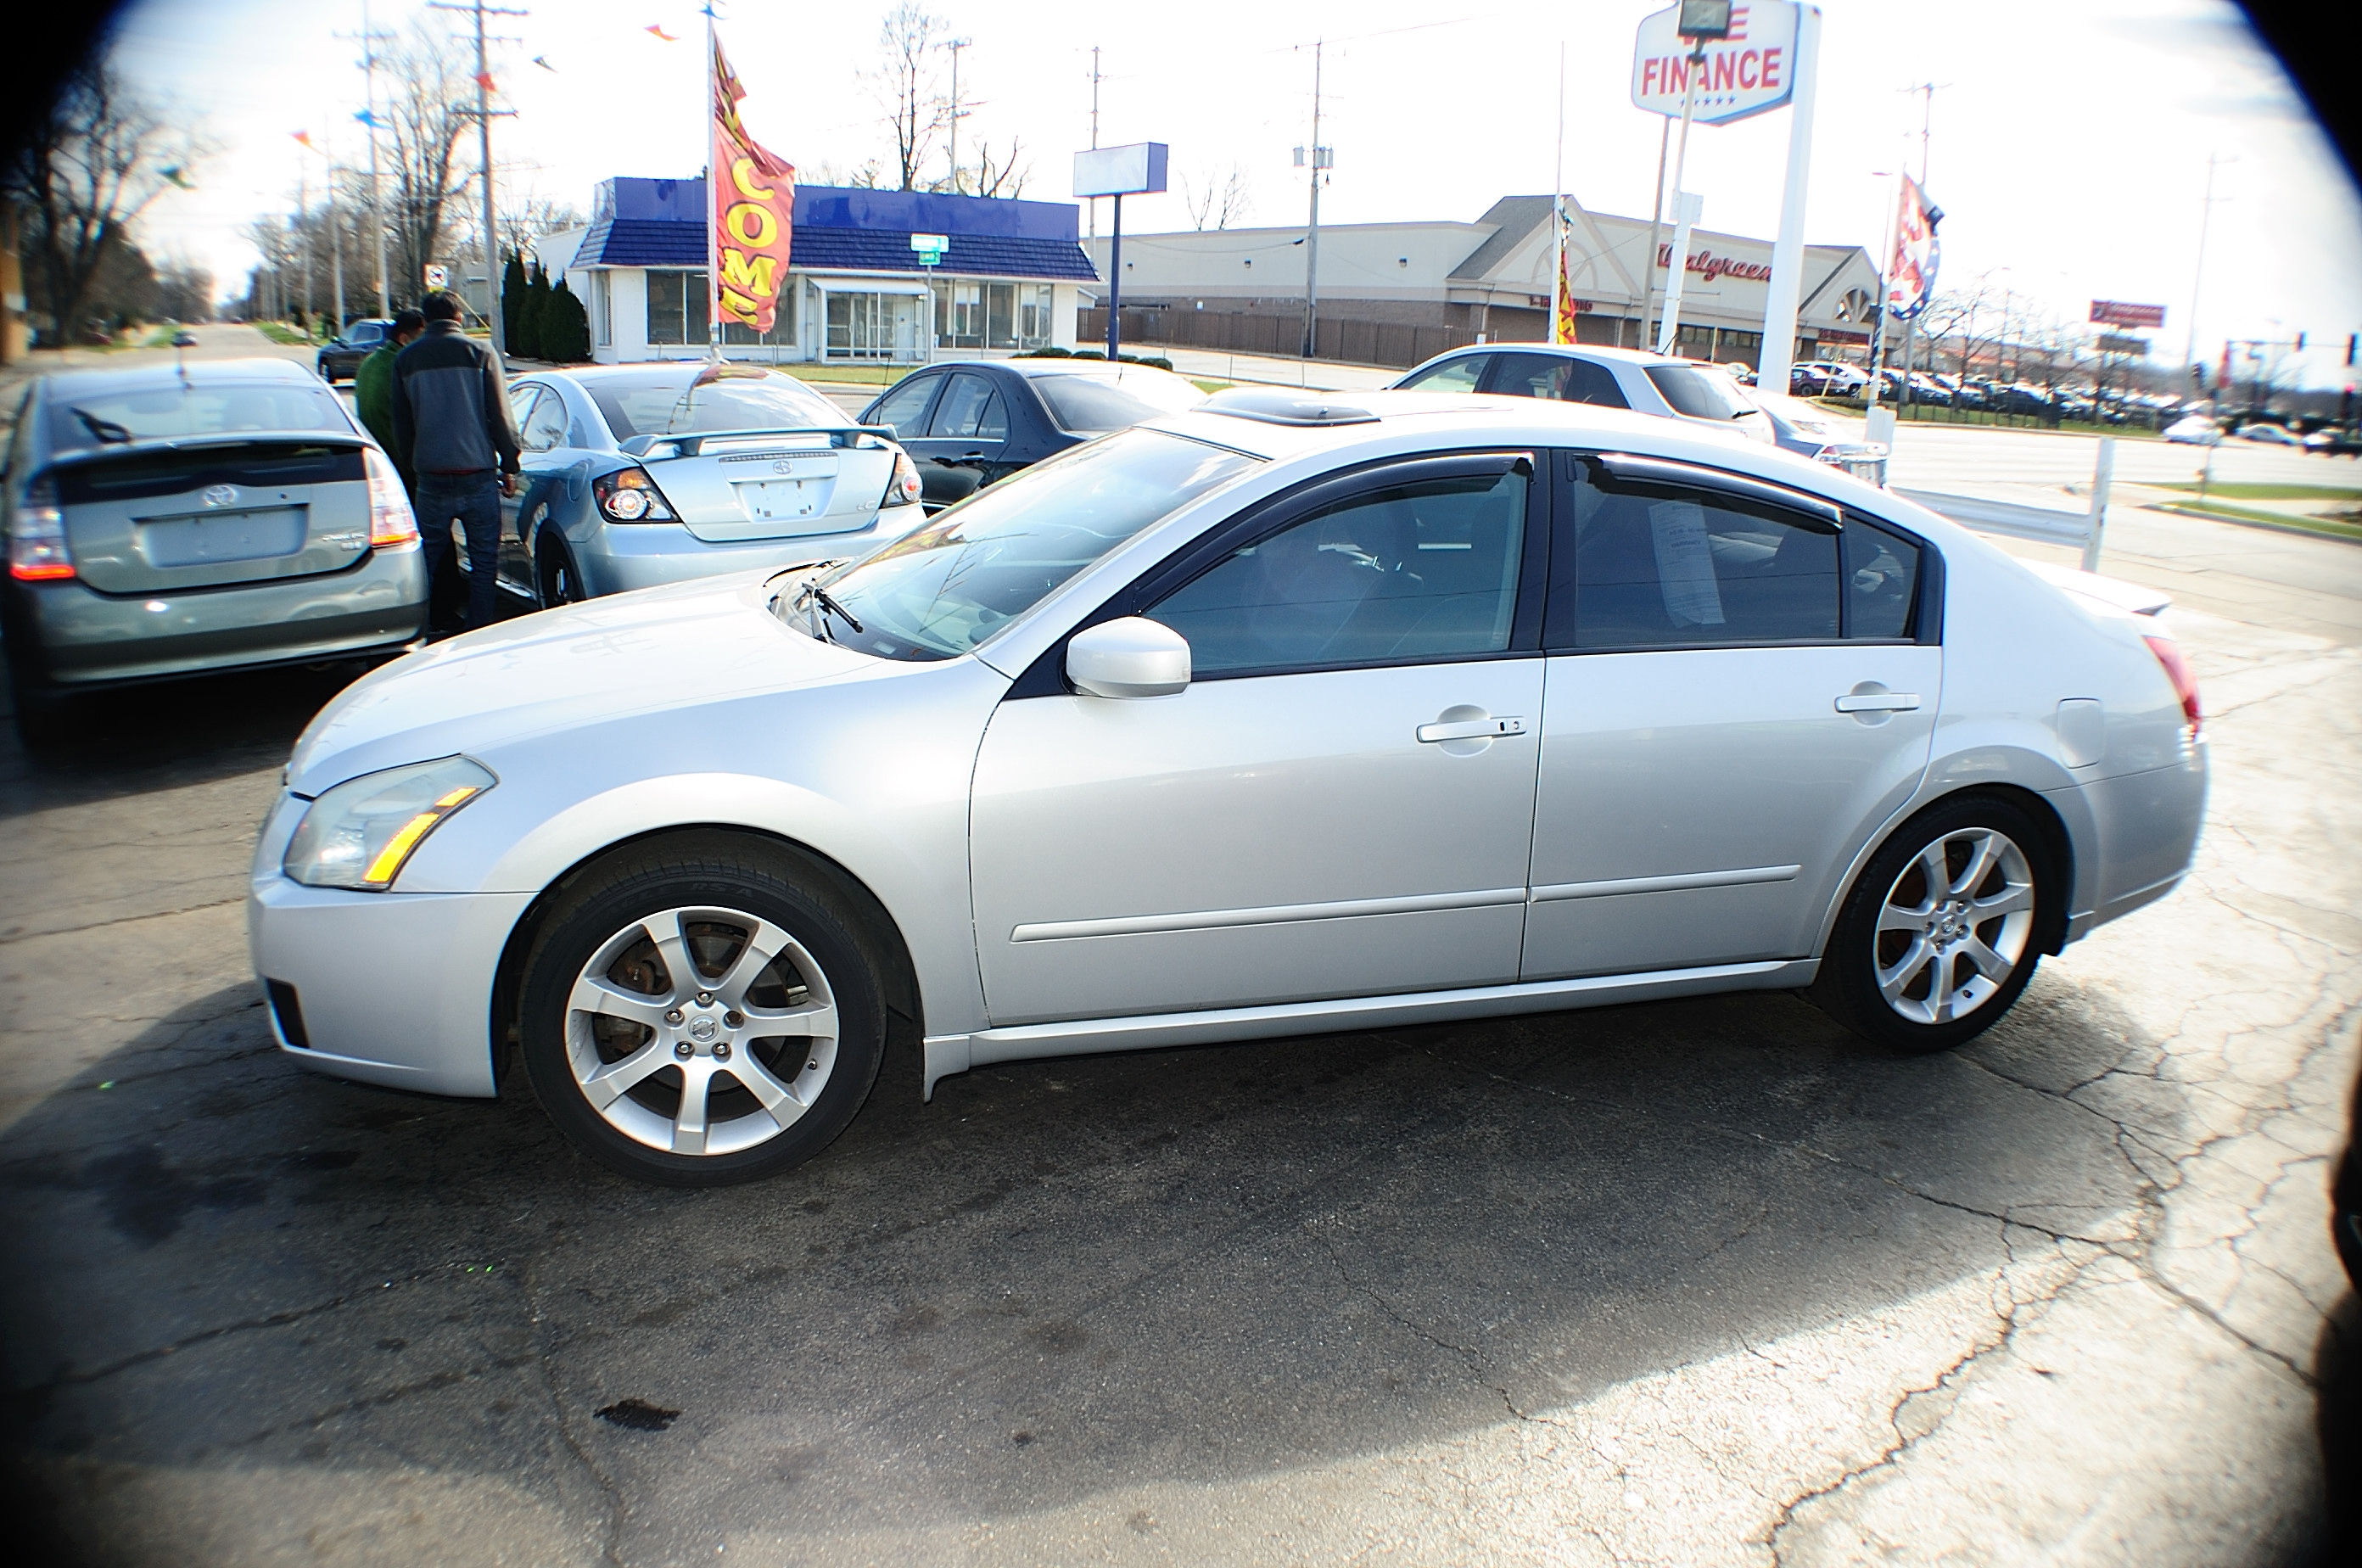 Nissan Dealers In Illinois >> 2007 Nissan Maxima SE 4Dr Silver Sedan used car